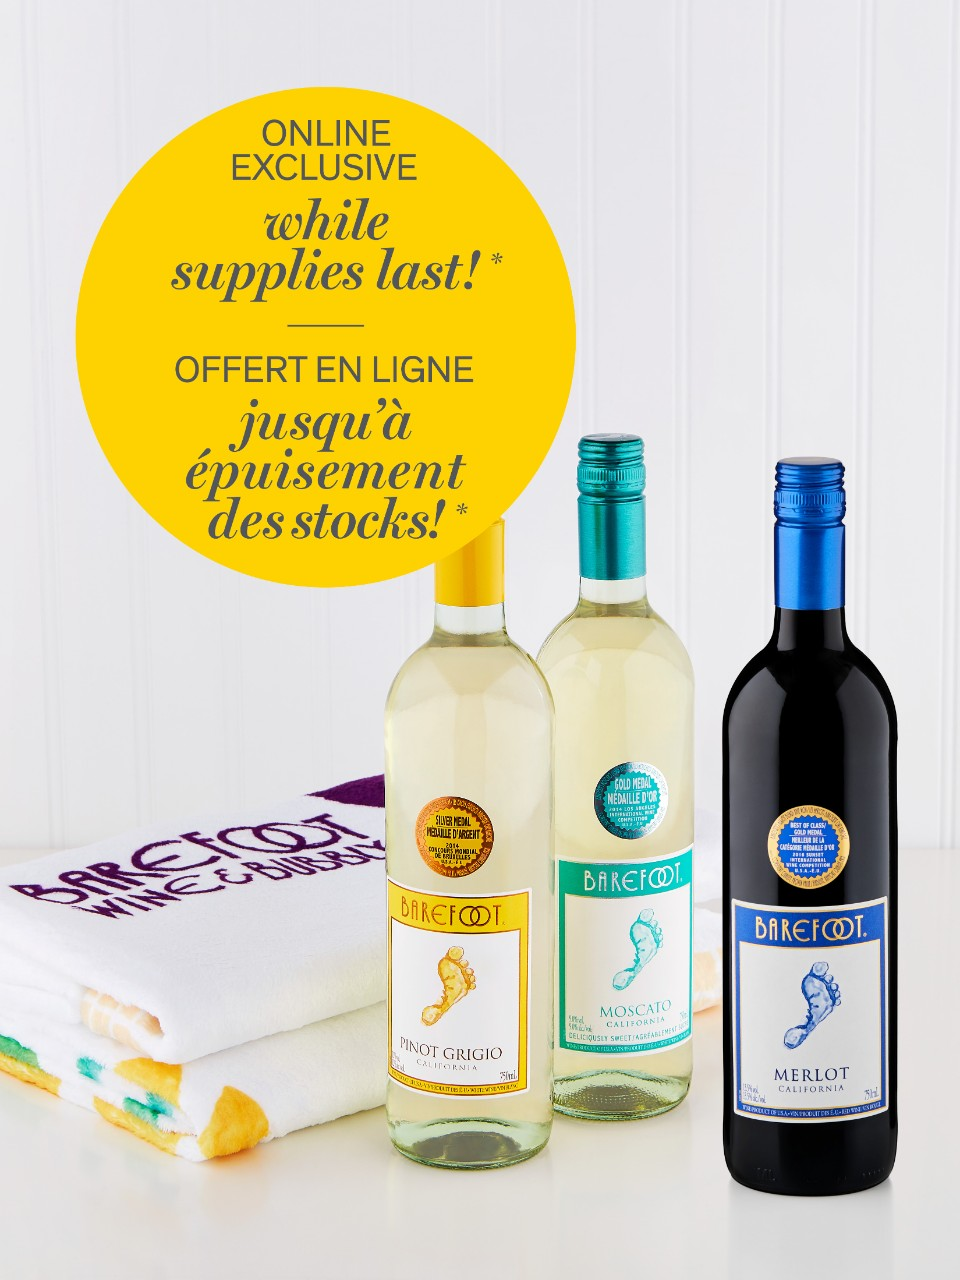 Barefoot Trio Wine Special Offer